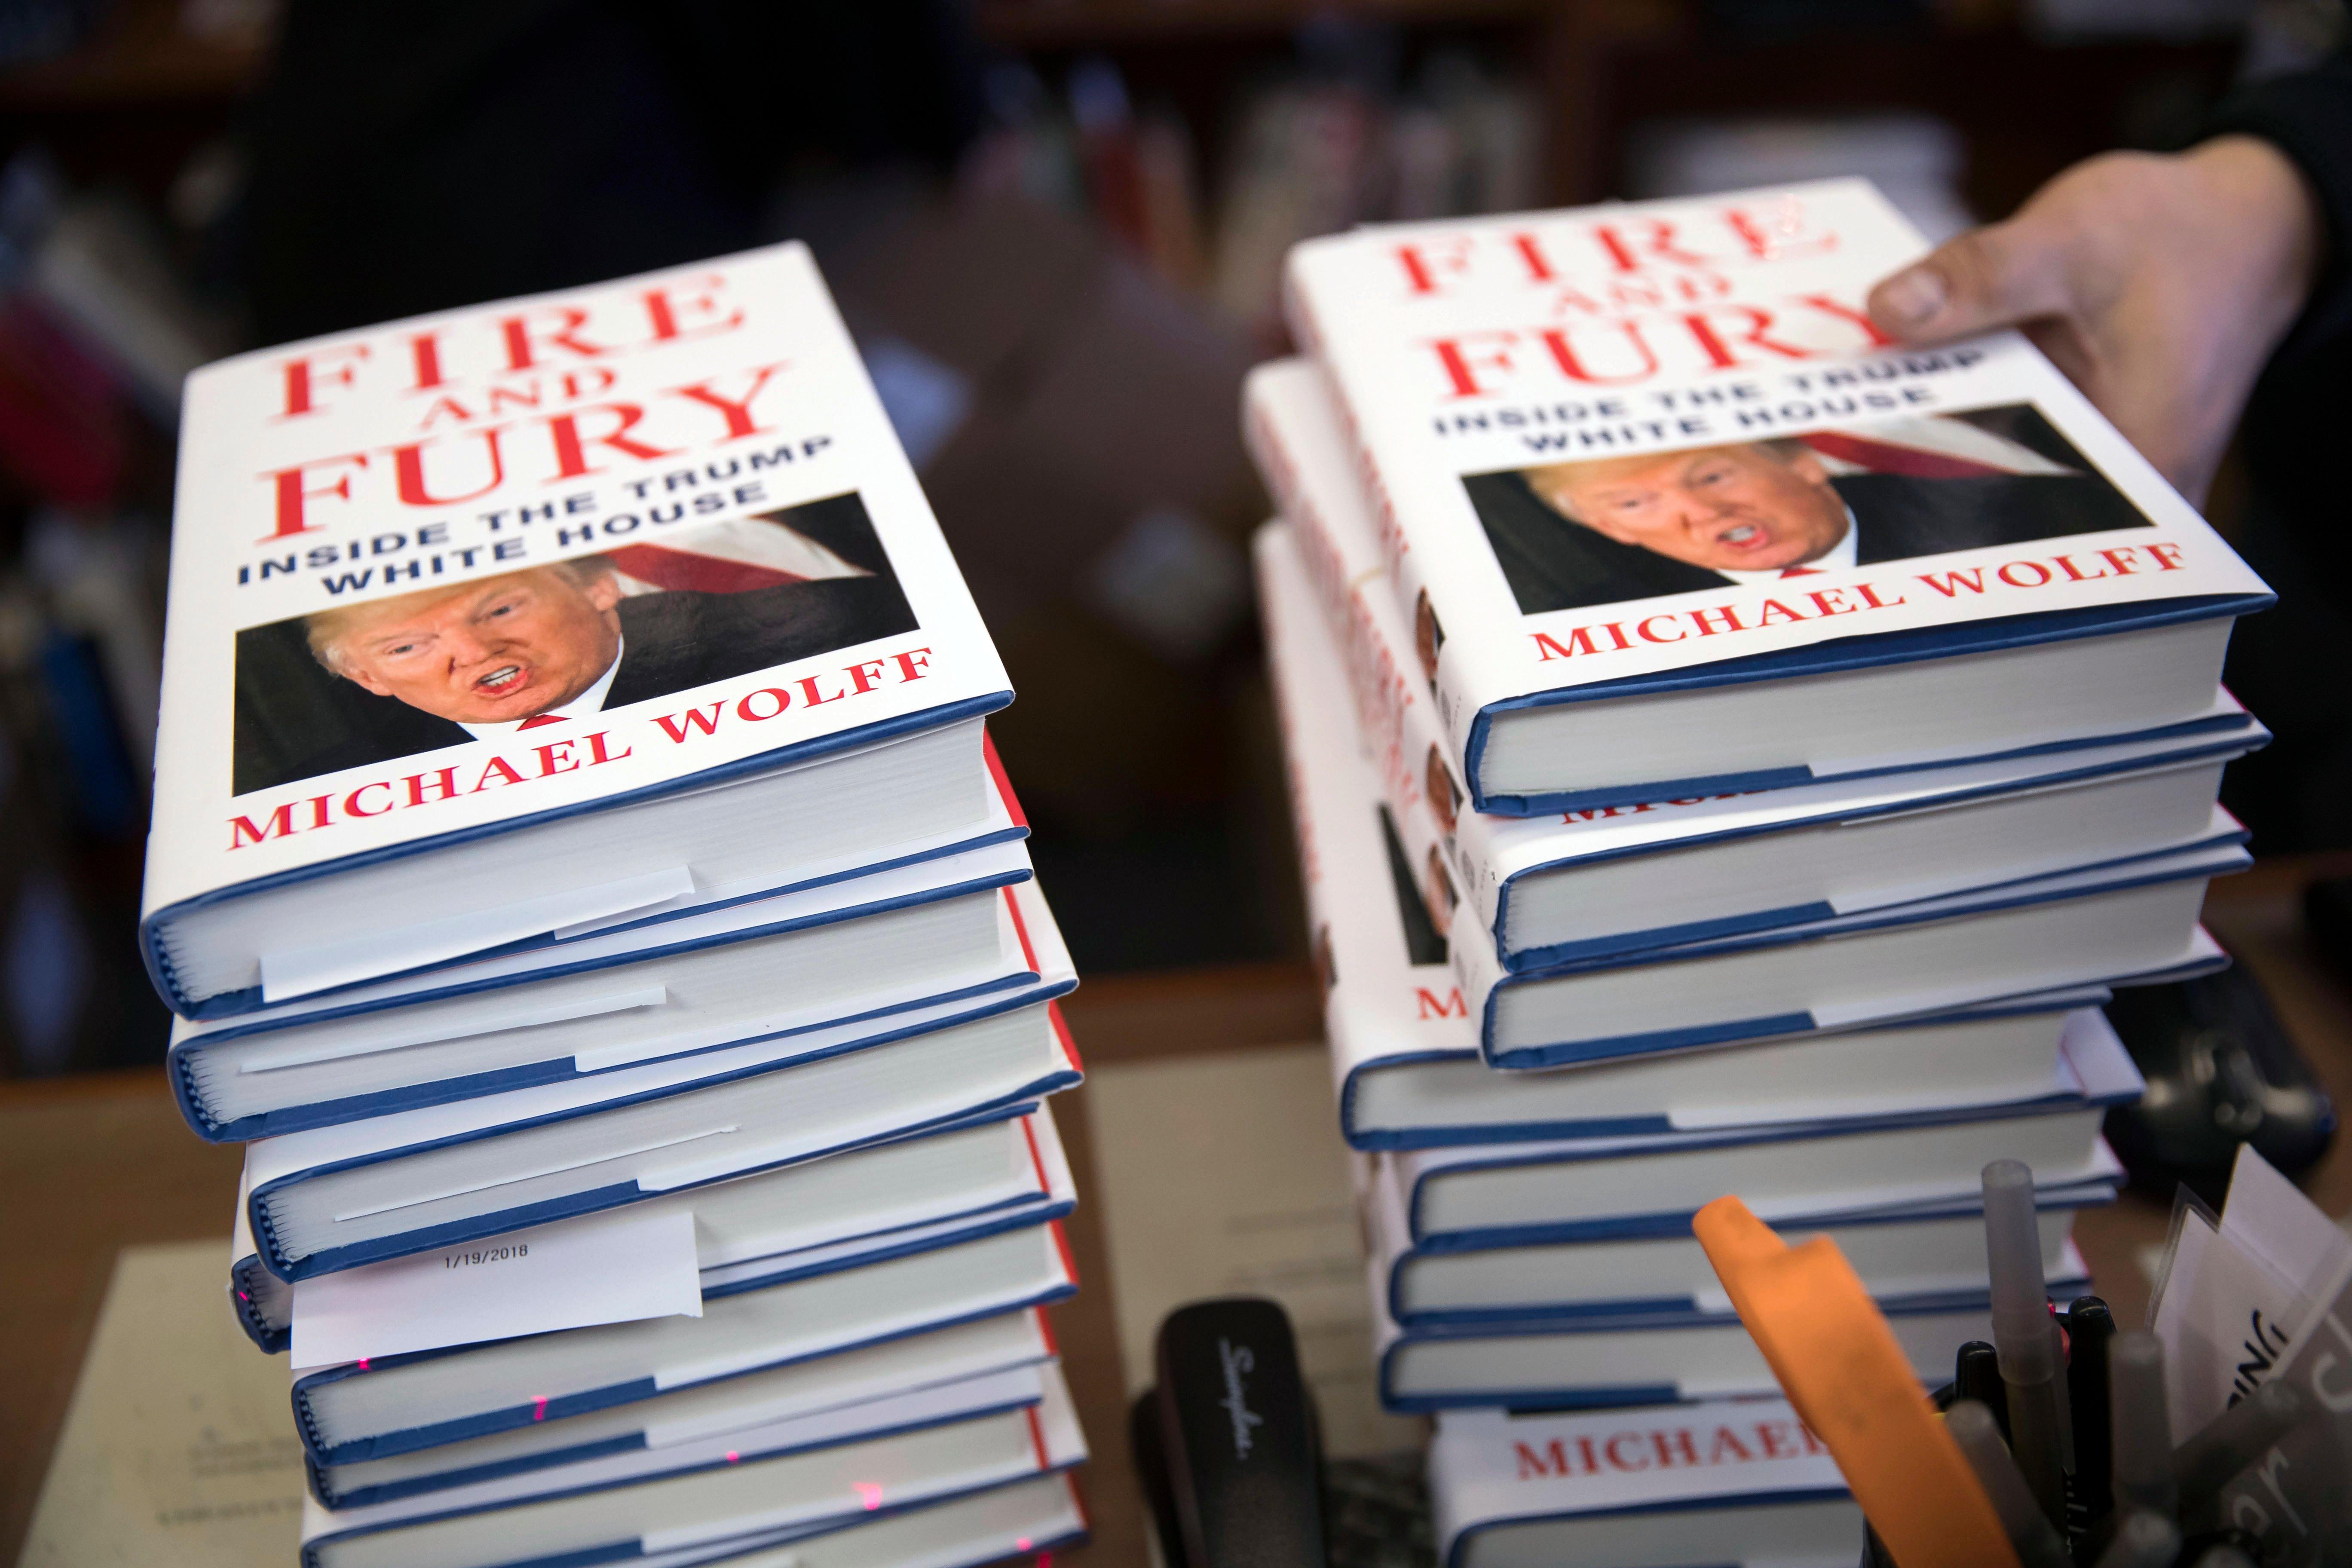 Michael Wolff Book Trump Team Think He's Unfit For Office Claims